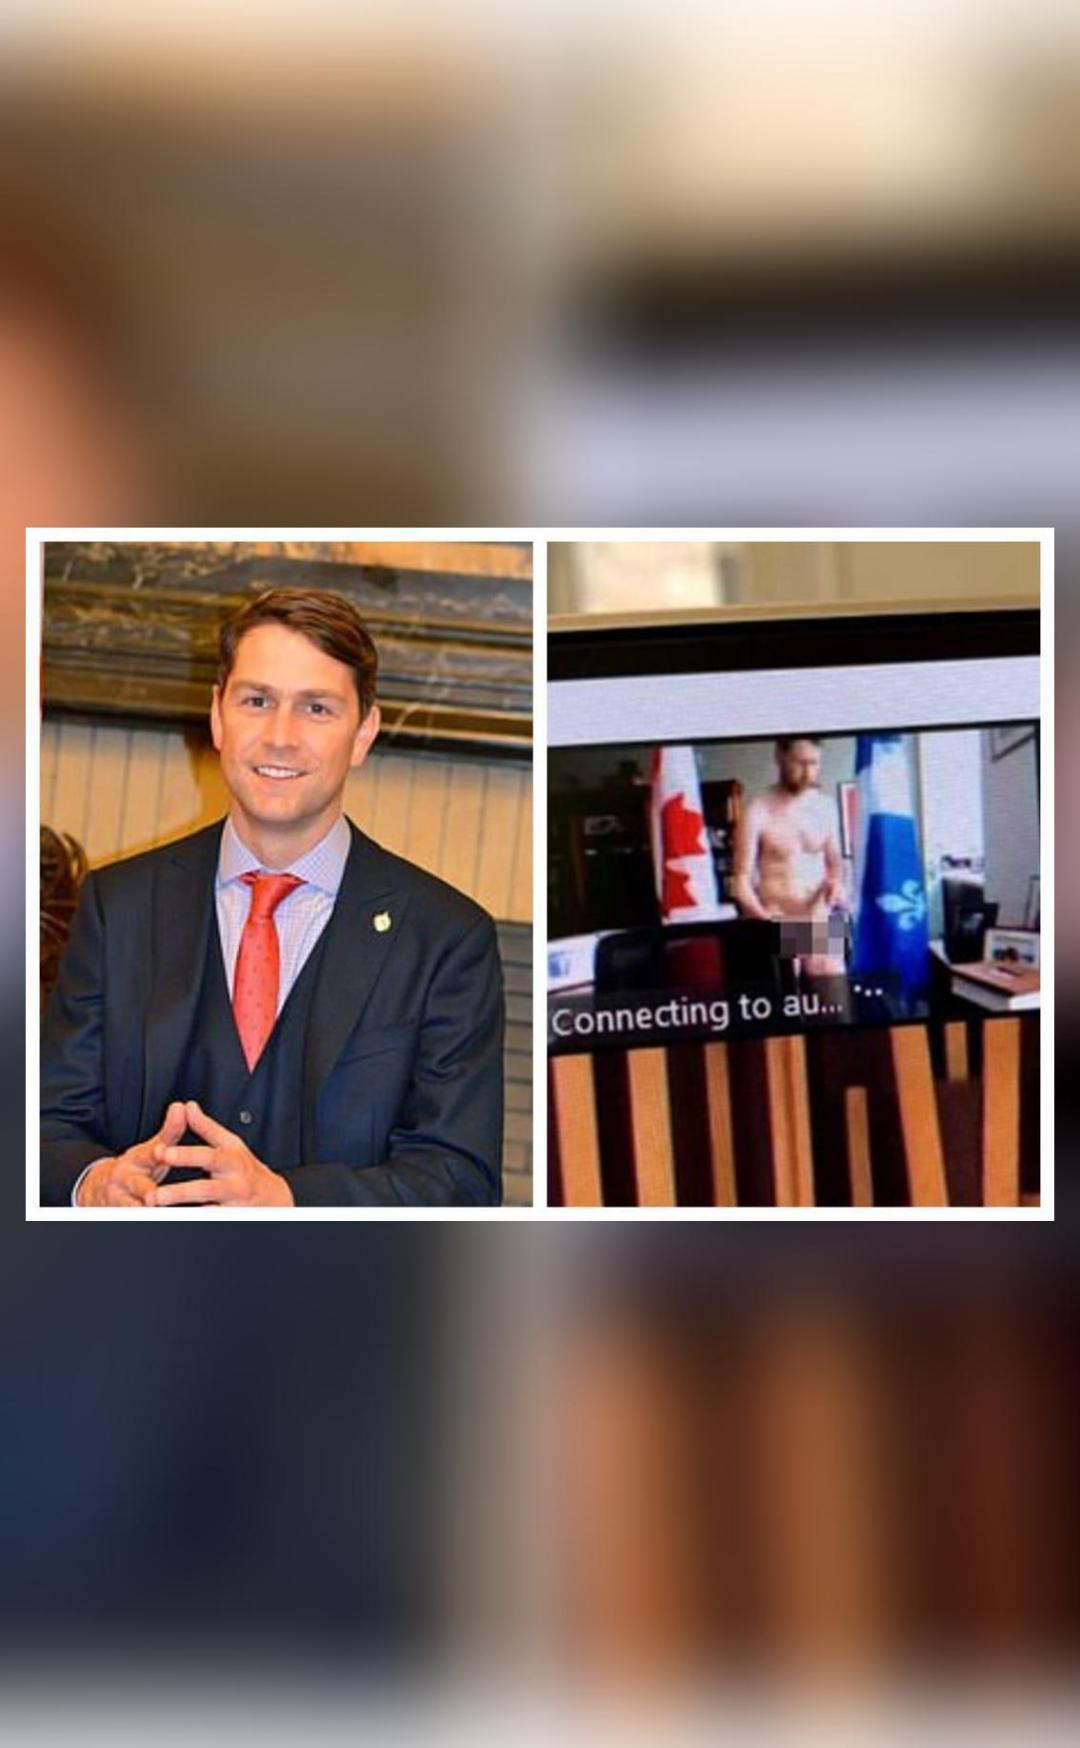 Canadian MP apologizes for naked mishap on Zoom: It wont